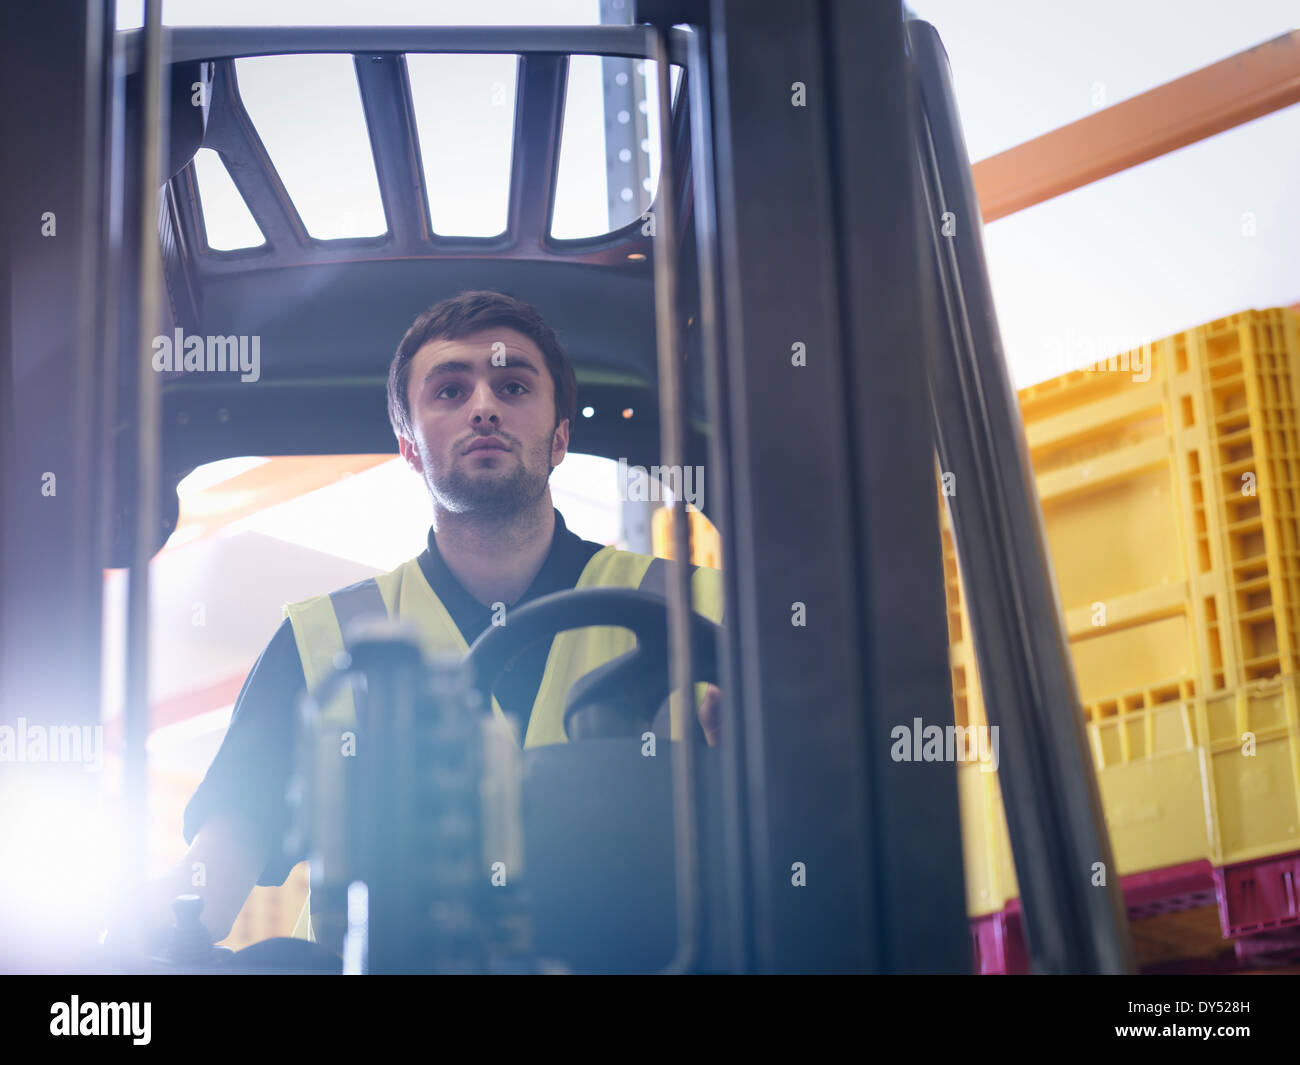 Apprentice drives forklift truck in training facility - Stock Image